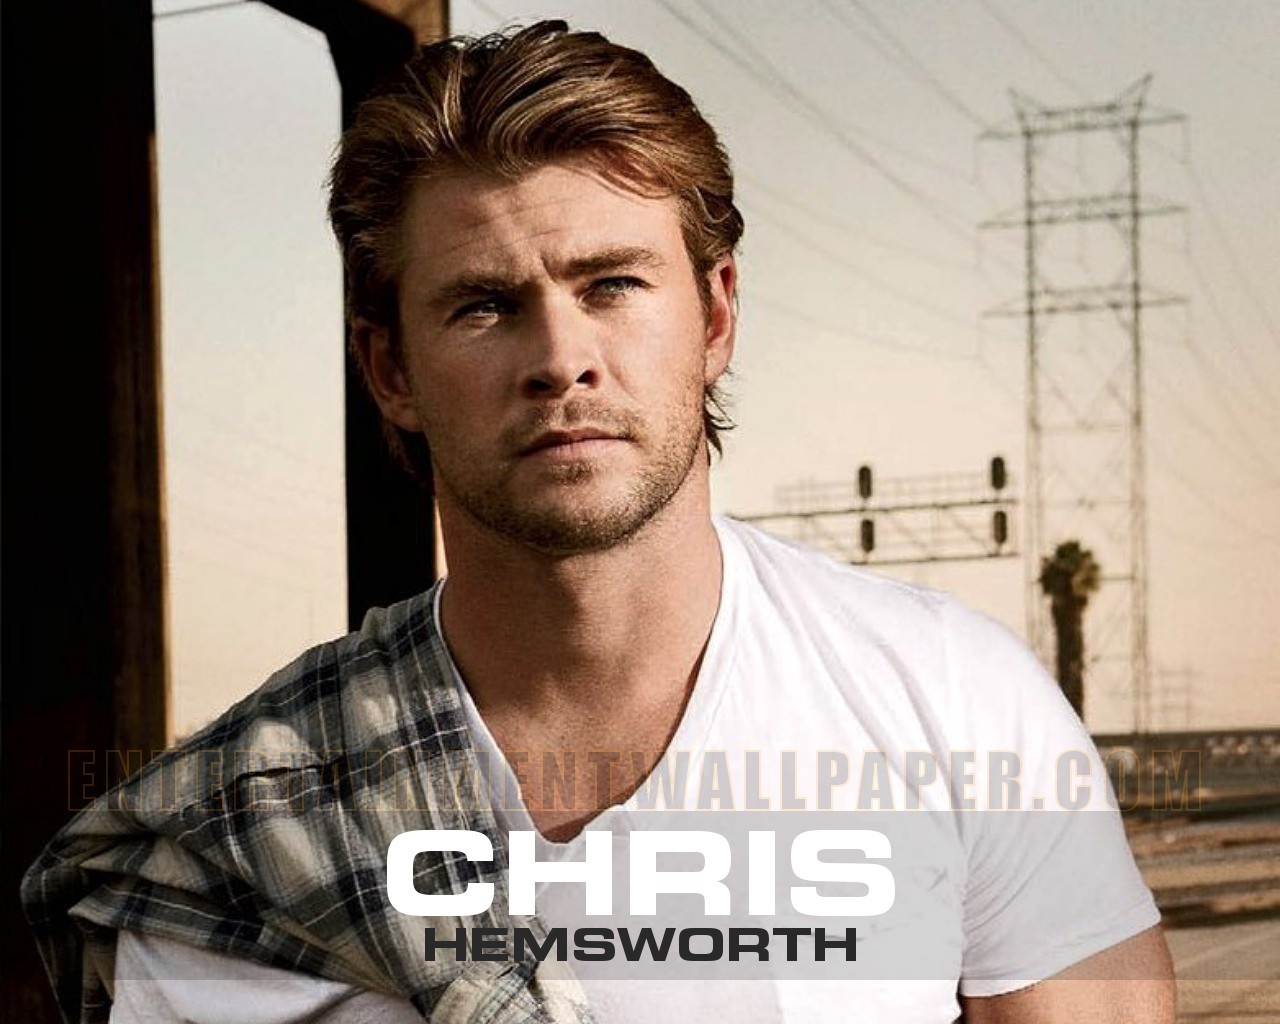 Chris Hemsworth - Chris Hemsworth Wallpaper (30822817) - Fanpop